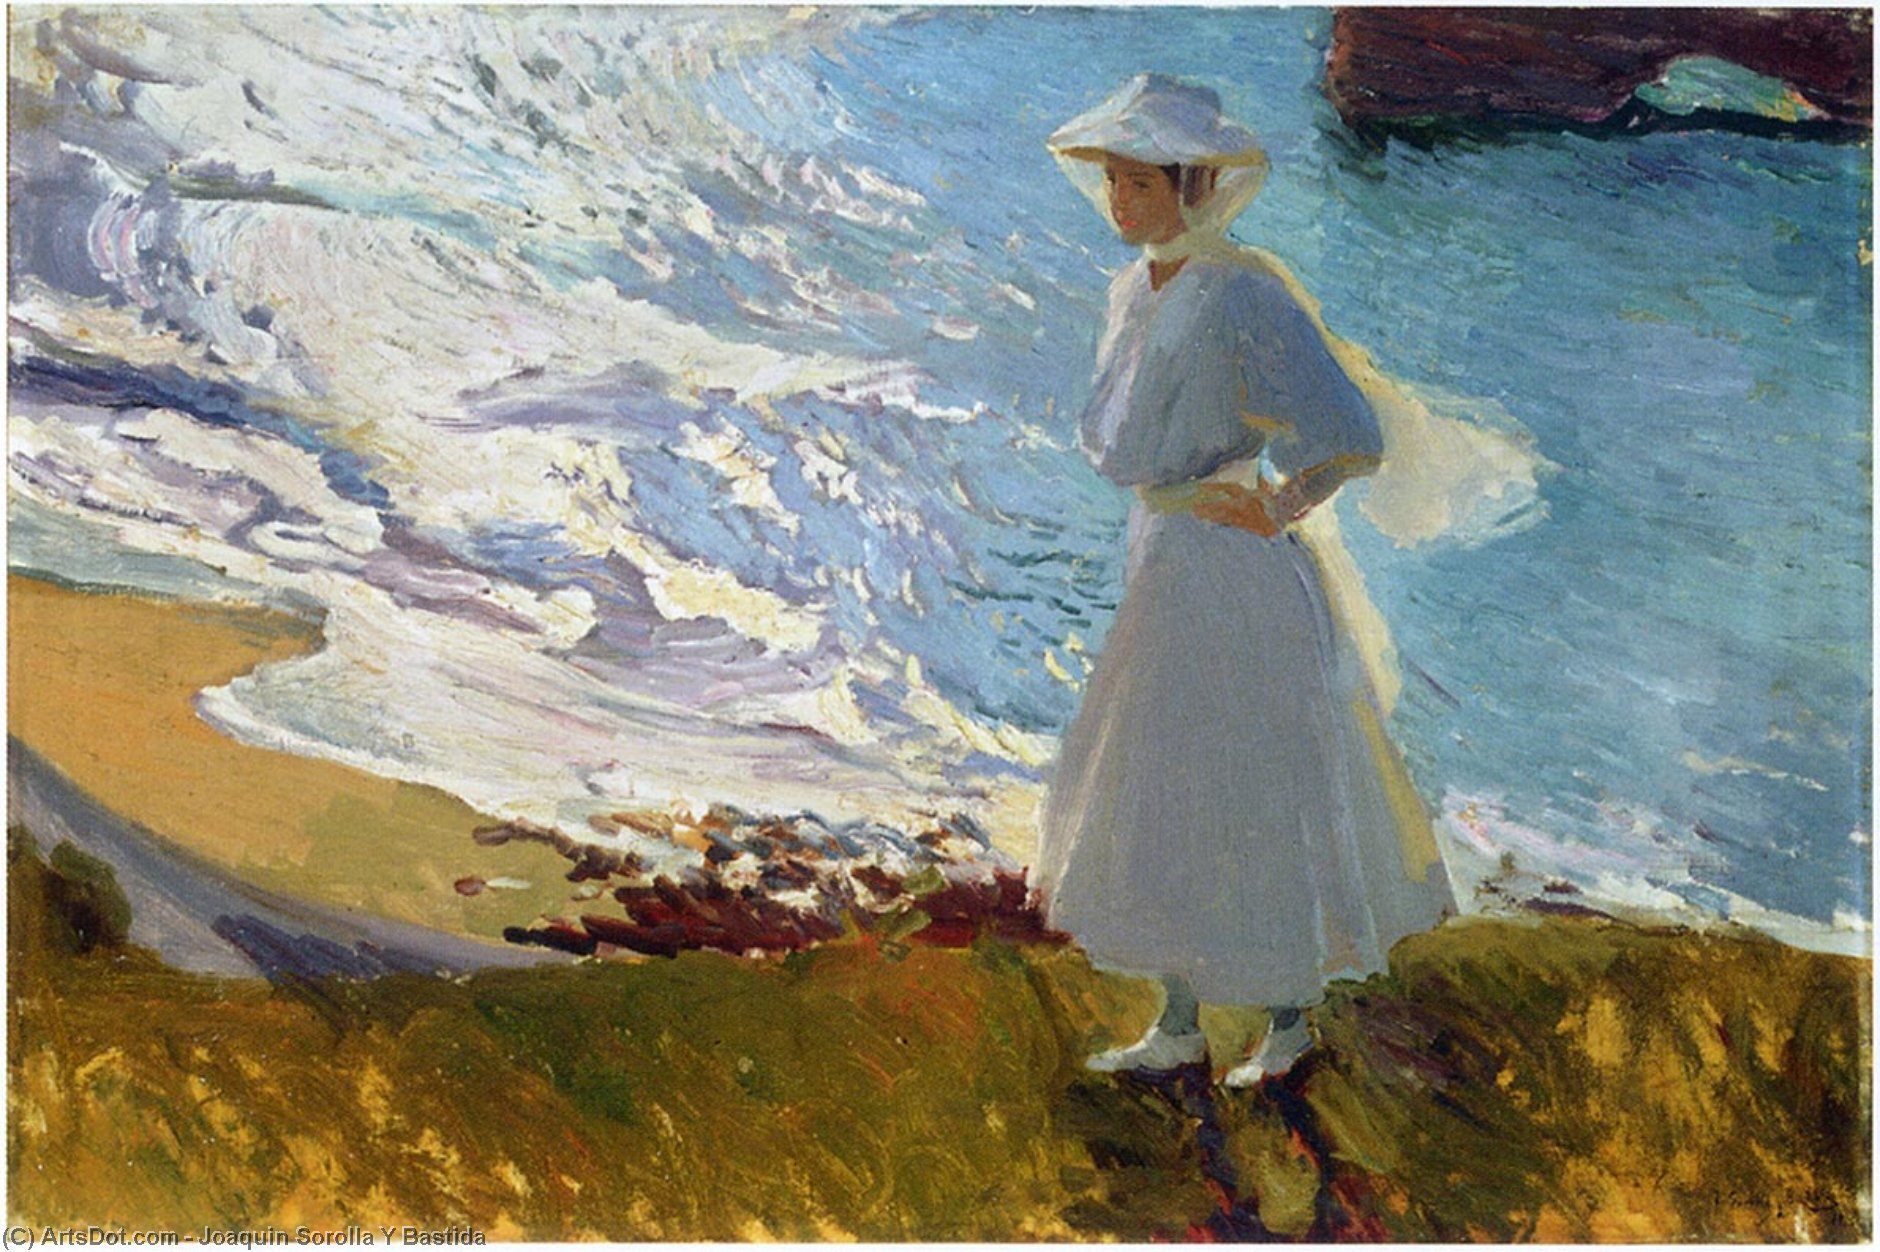 Maria at the Beach, Biarritz, Oil On Canvas by Joaquin Sorolla Y Bastida (1863-1923, Spain)